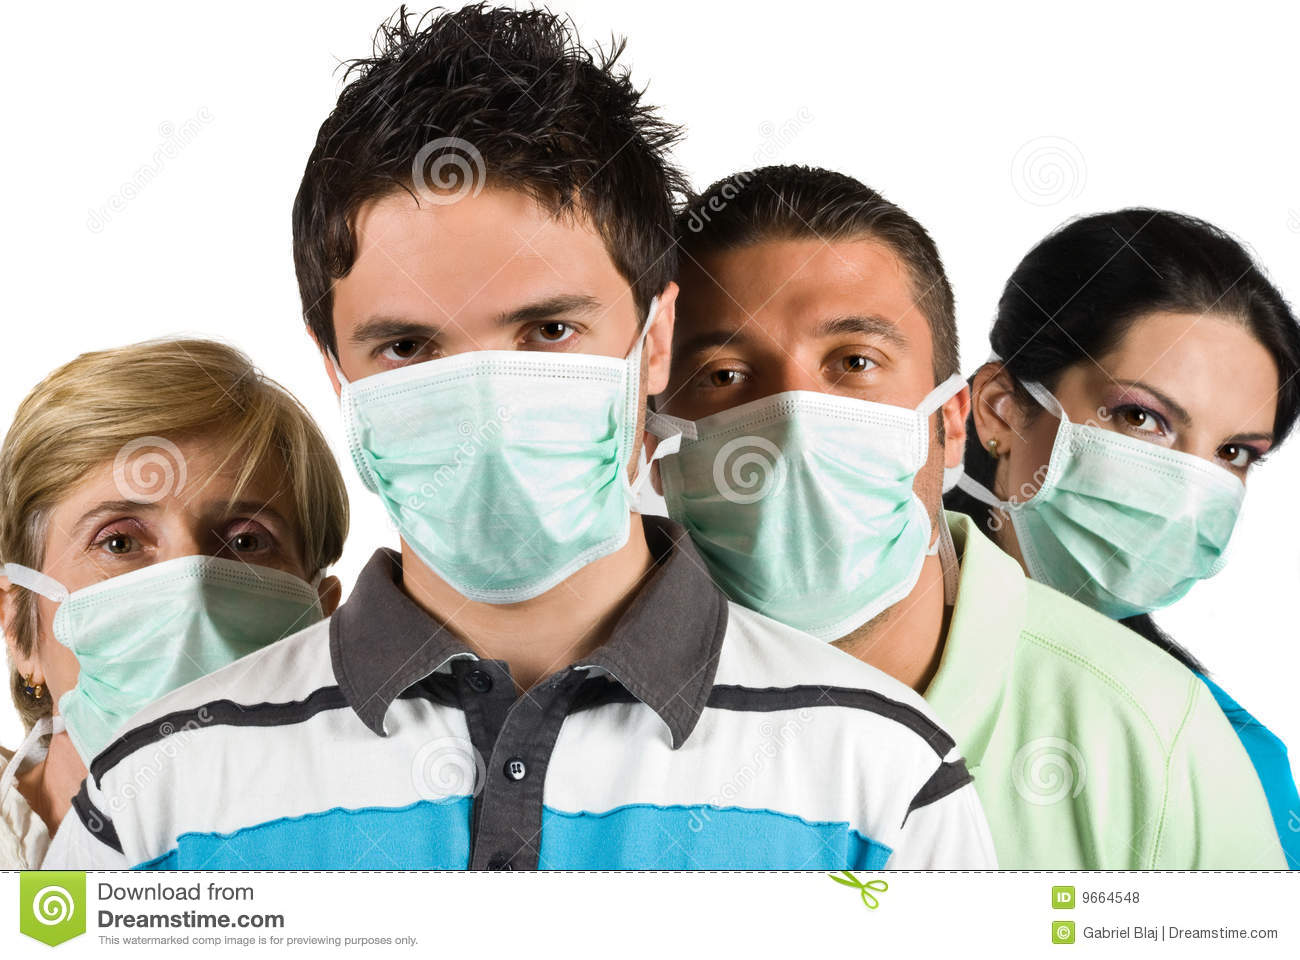 Dinner Wagon also LaheyClinicPeabody likewise  in addition Royalty Free Stock Photos People Protection Flu Wear Protective Mask Image9664548 moreover B C3 BCro Empfangstheken 950427918483. on medical office design